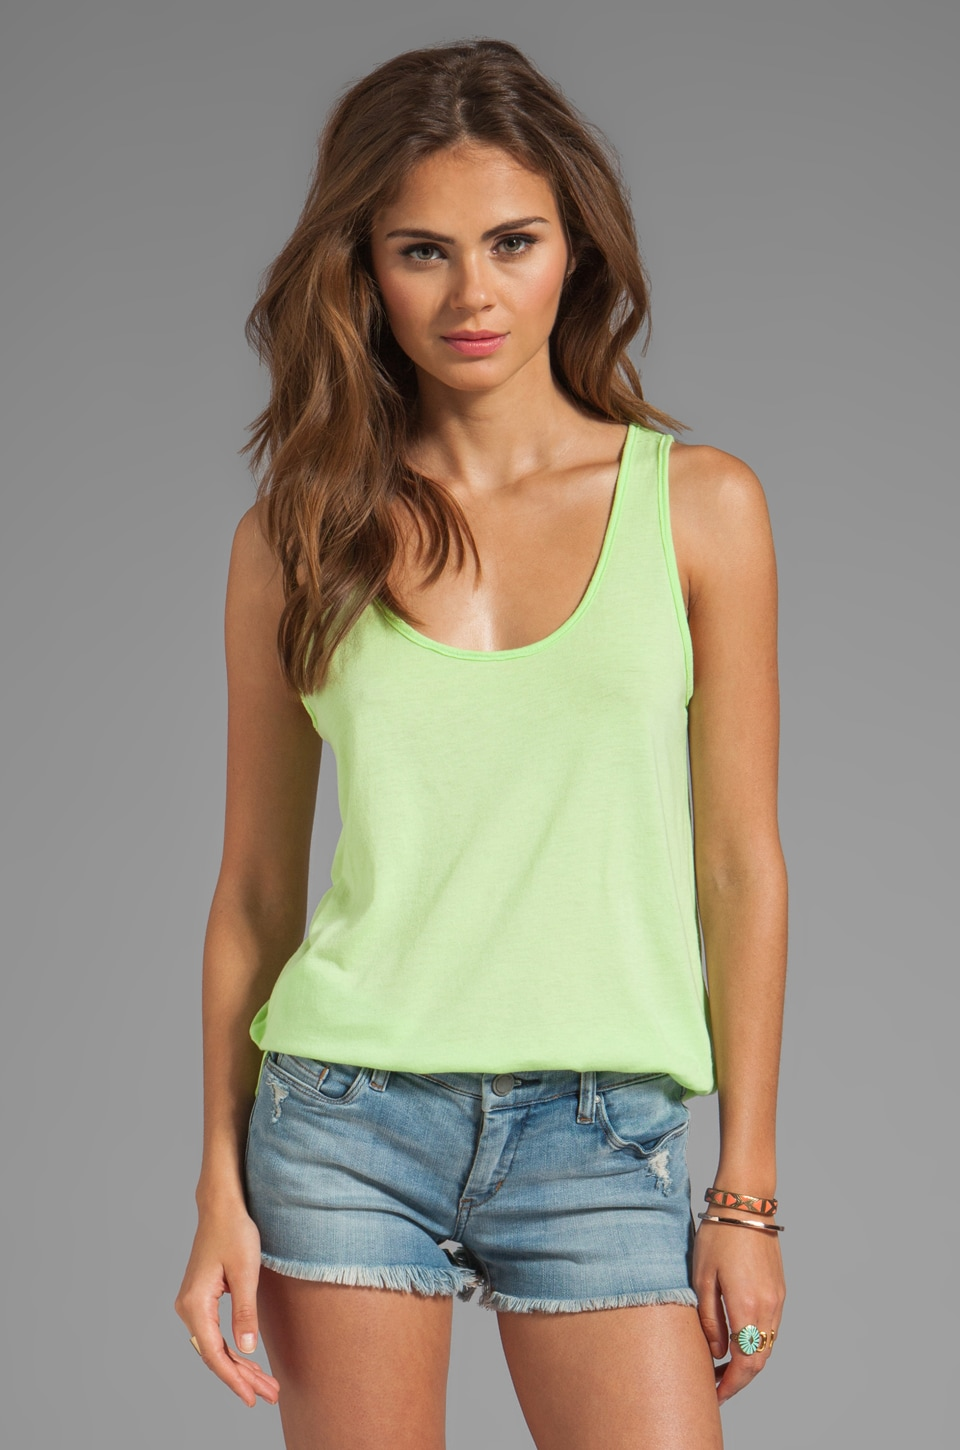 Market Superfine Jersey Donna Tank in Chartreuse